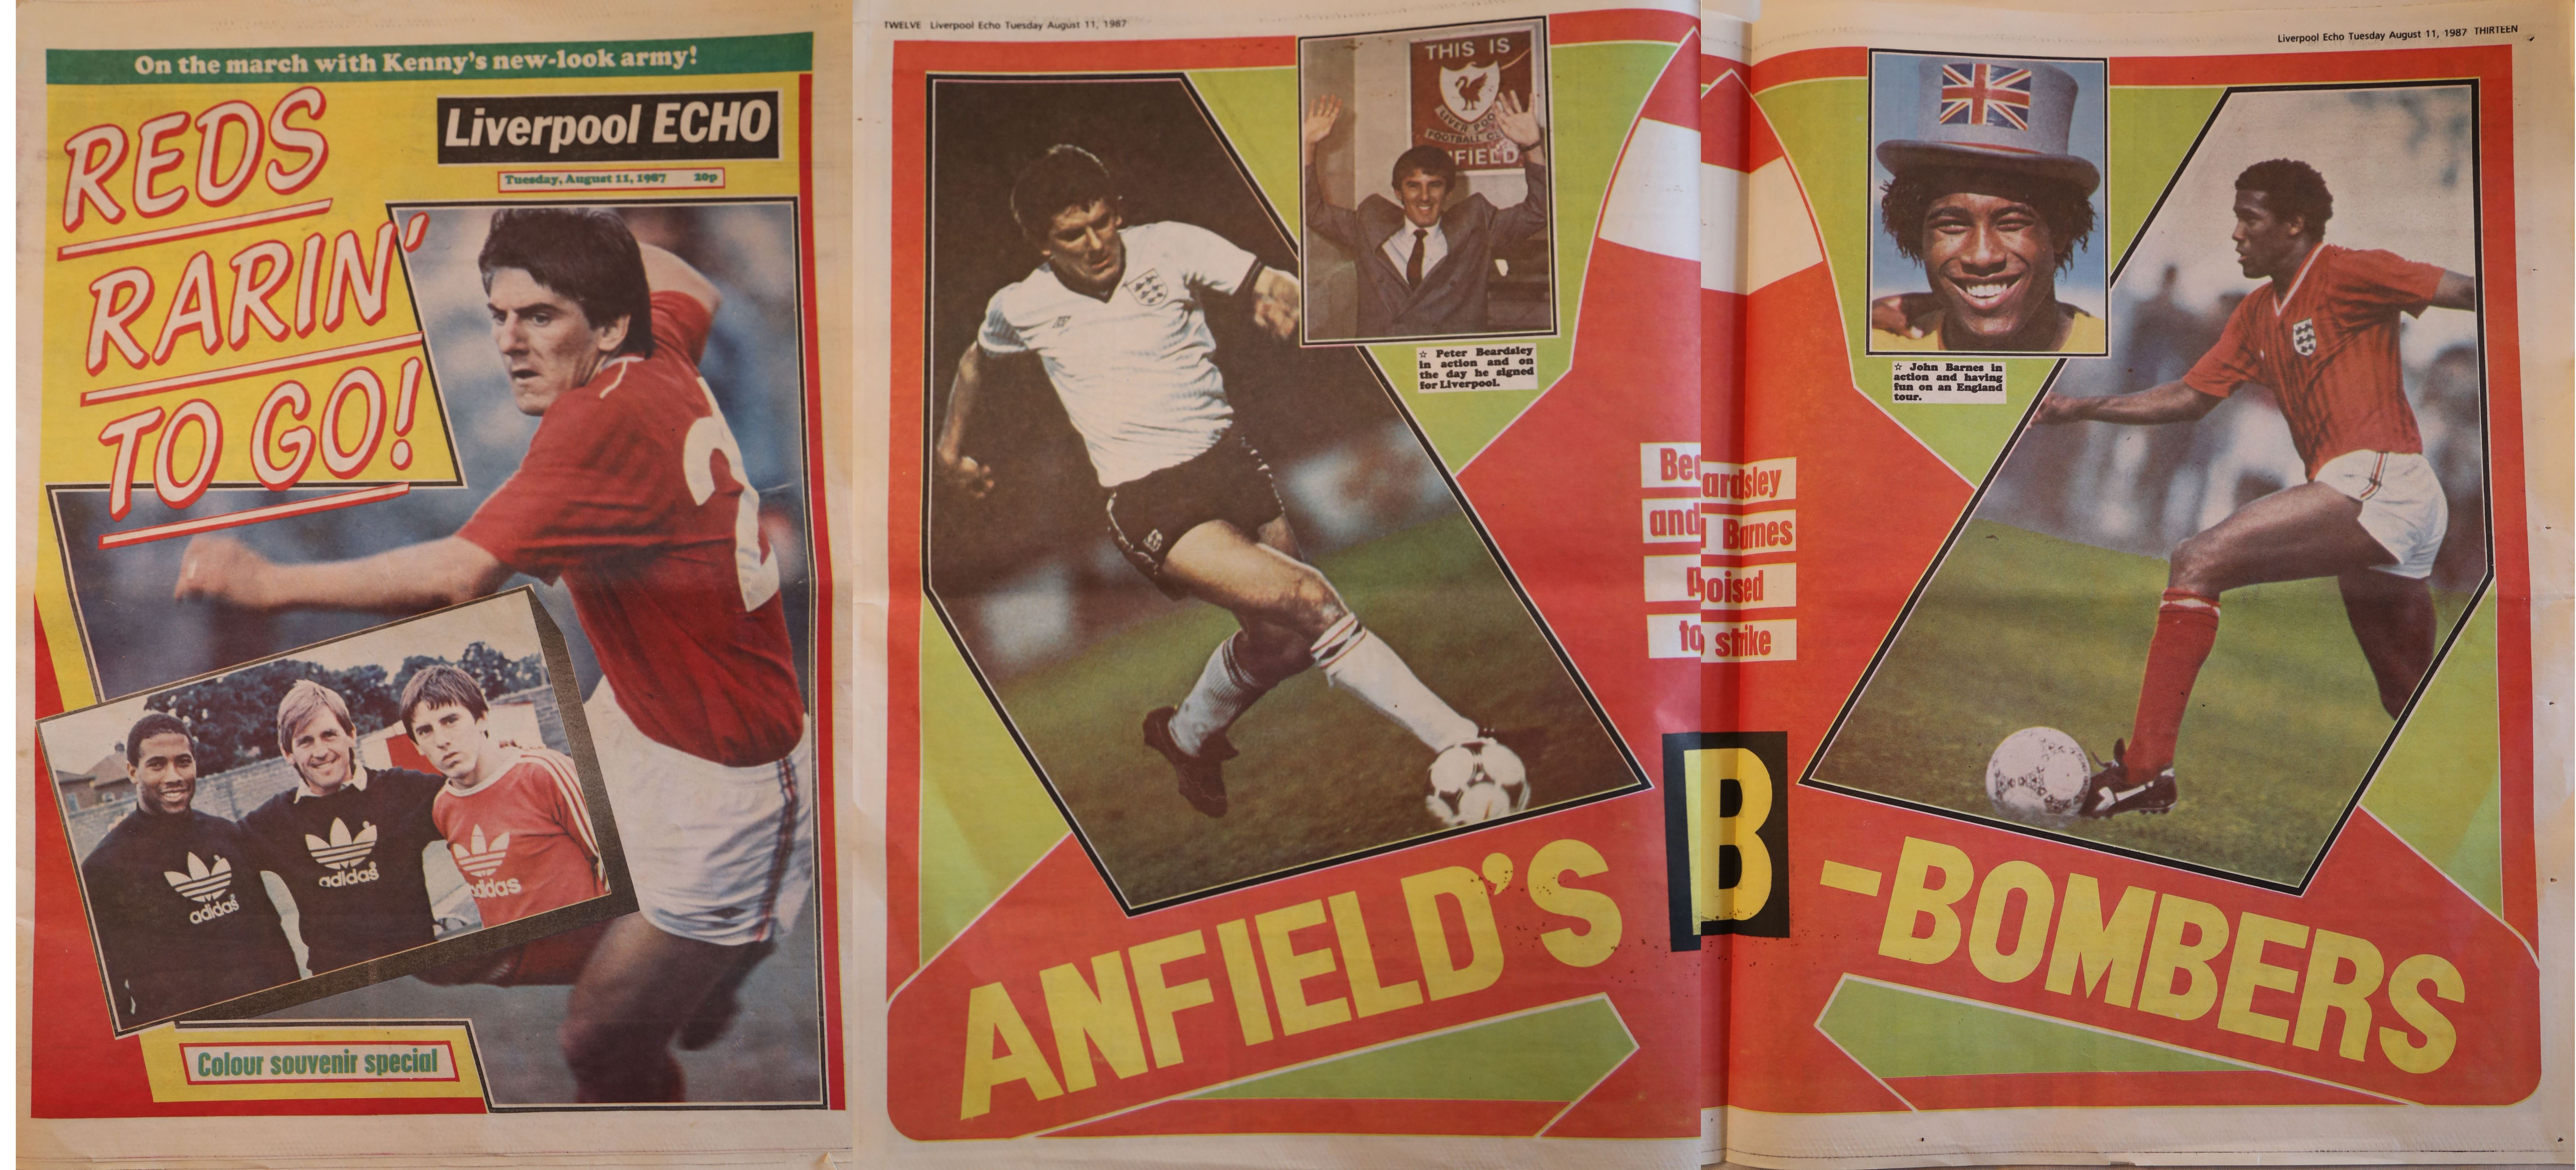 Anfield's Bombers - 1987/88